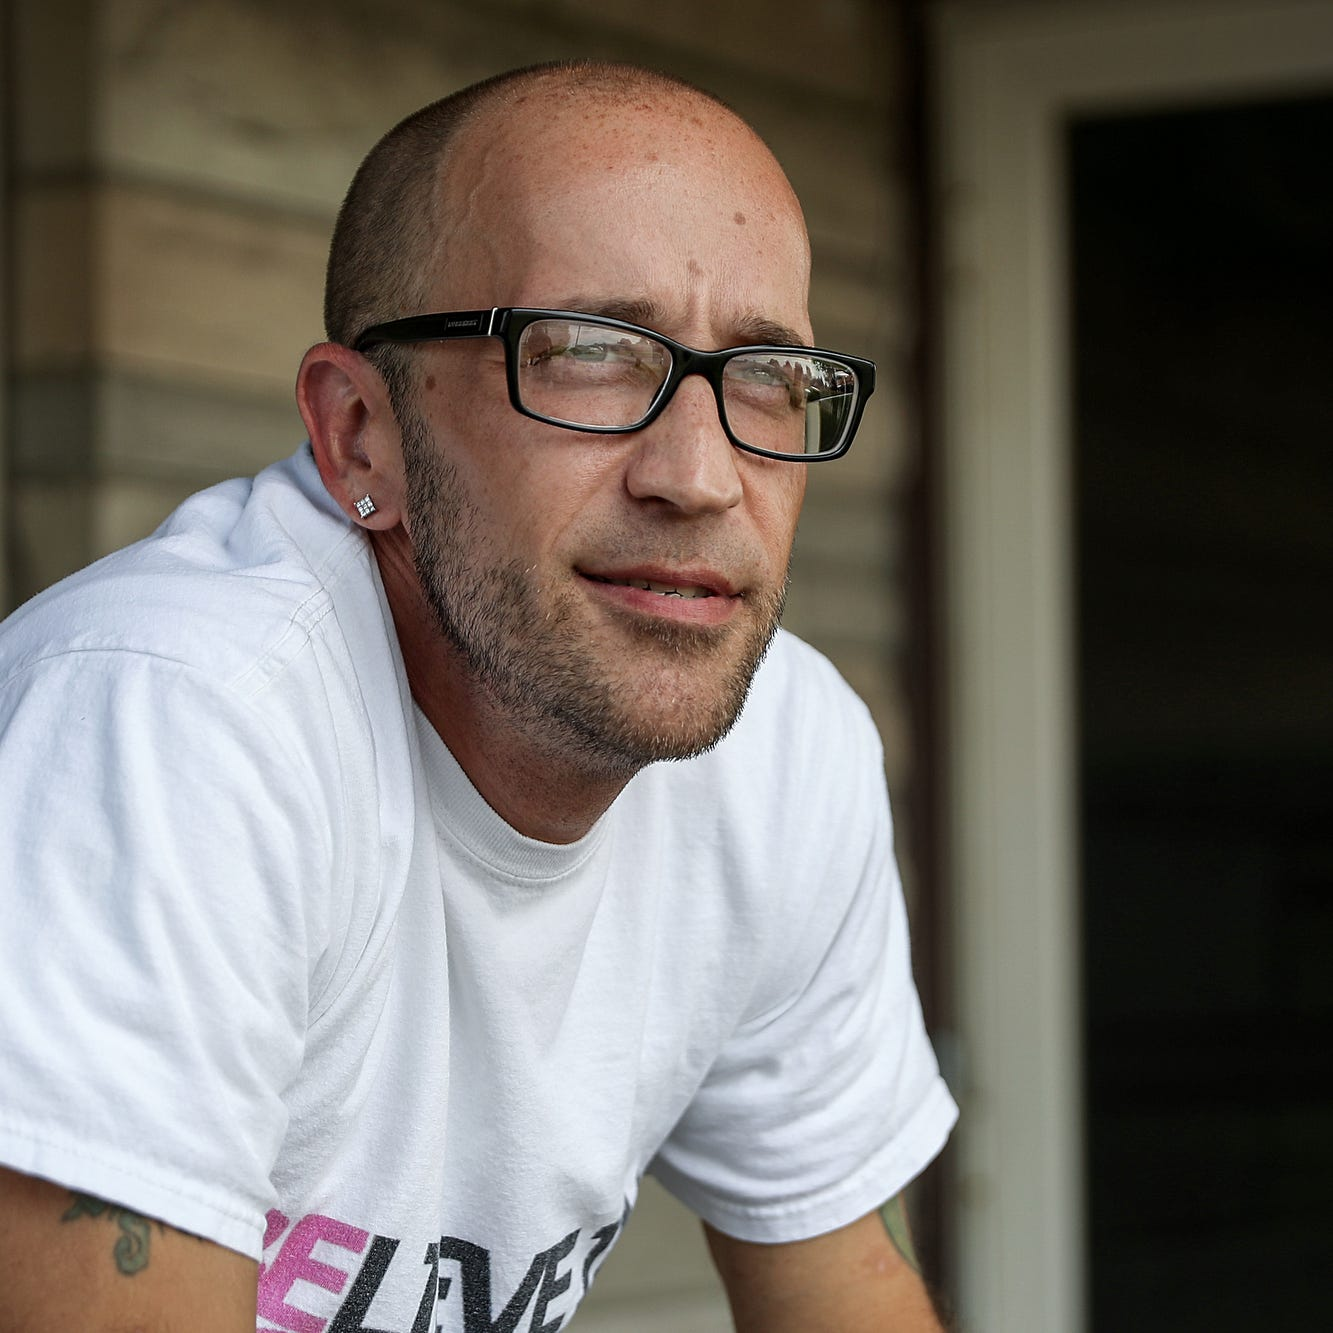 Tyson Timbs, former 'junkie' from Marion, is namesake of important U.S. Supreme Court case